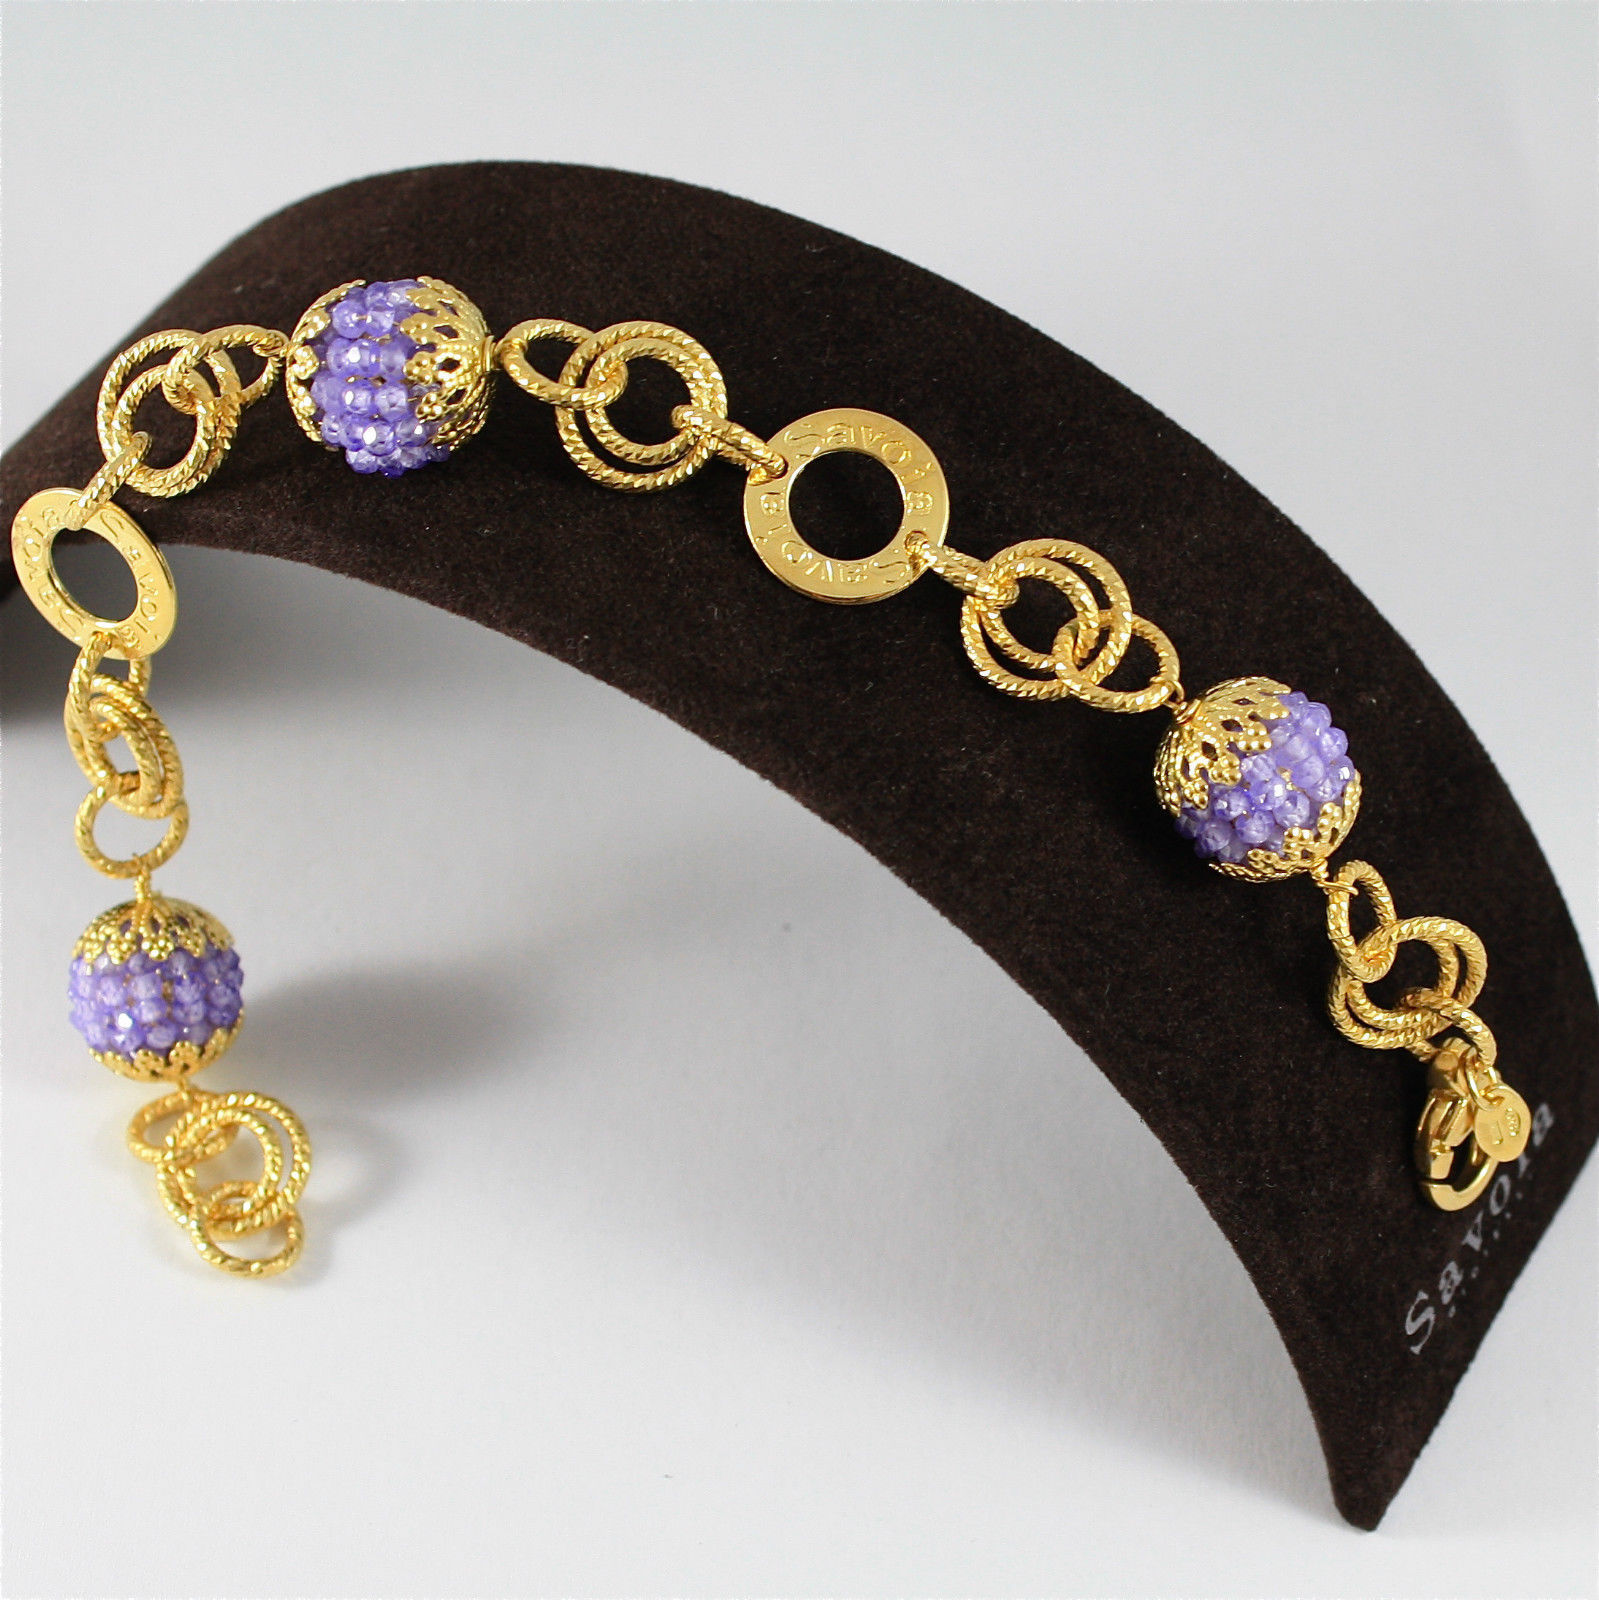 925 SILVER BRACELET, GOLD PL, FACETED AMETHYST, MADE IN ITALY BY SAVOIA JEWELS